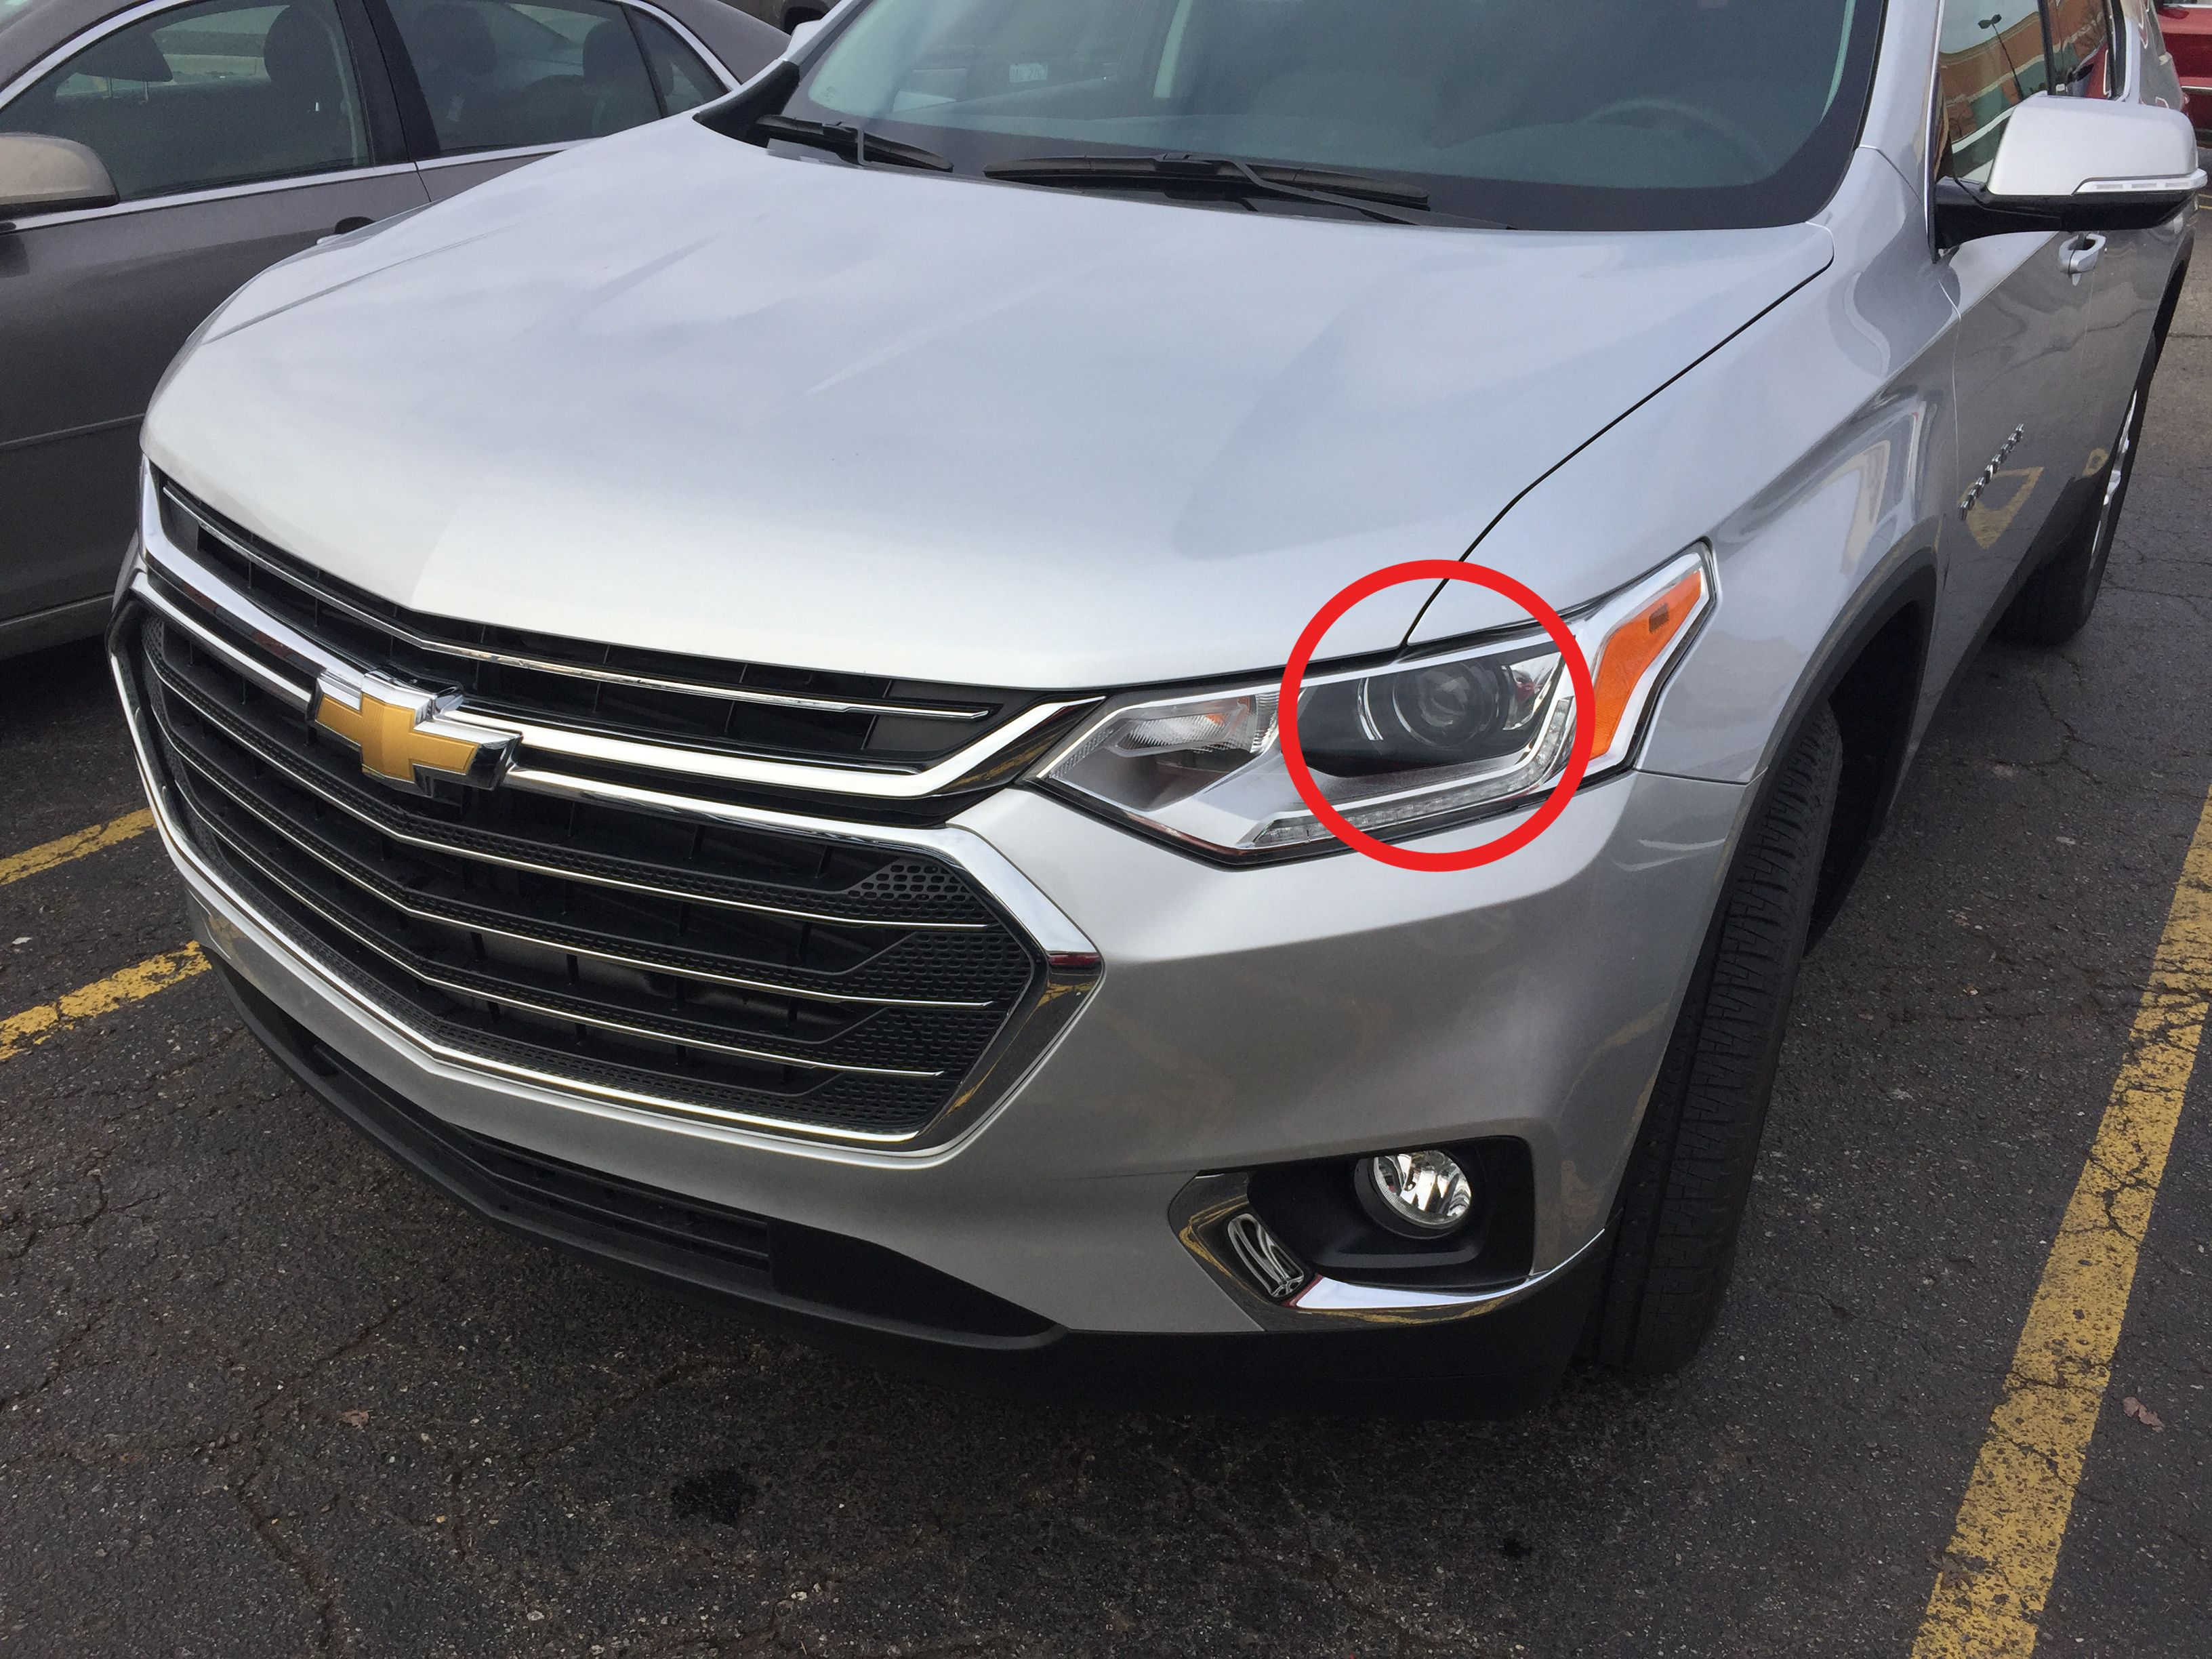 2019 Chevy Traverse Headlight Bulb Replacement Headlight Bulbs Headlight Bulb Replacement Headlights